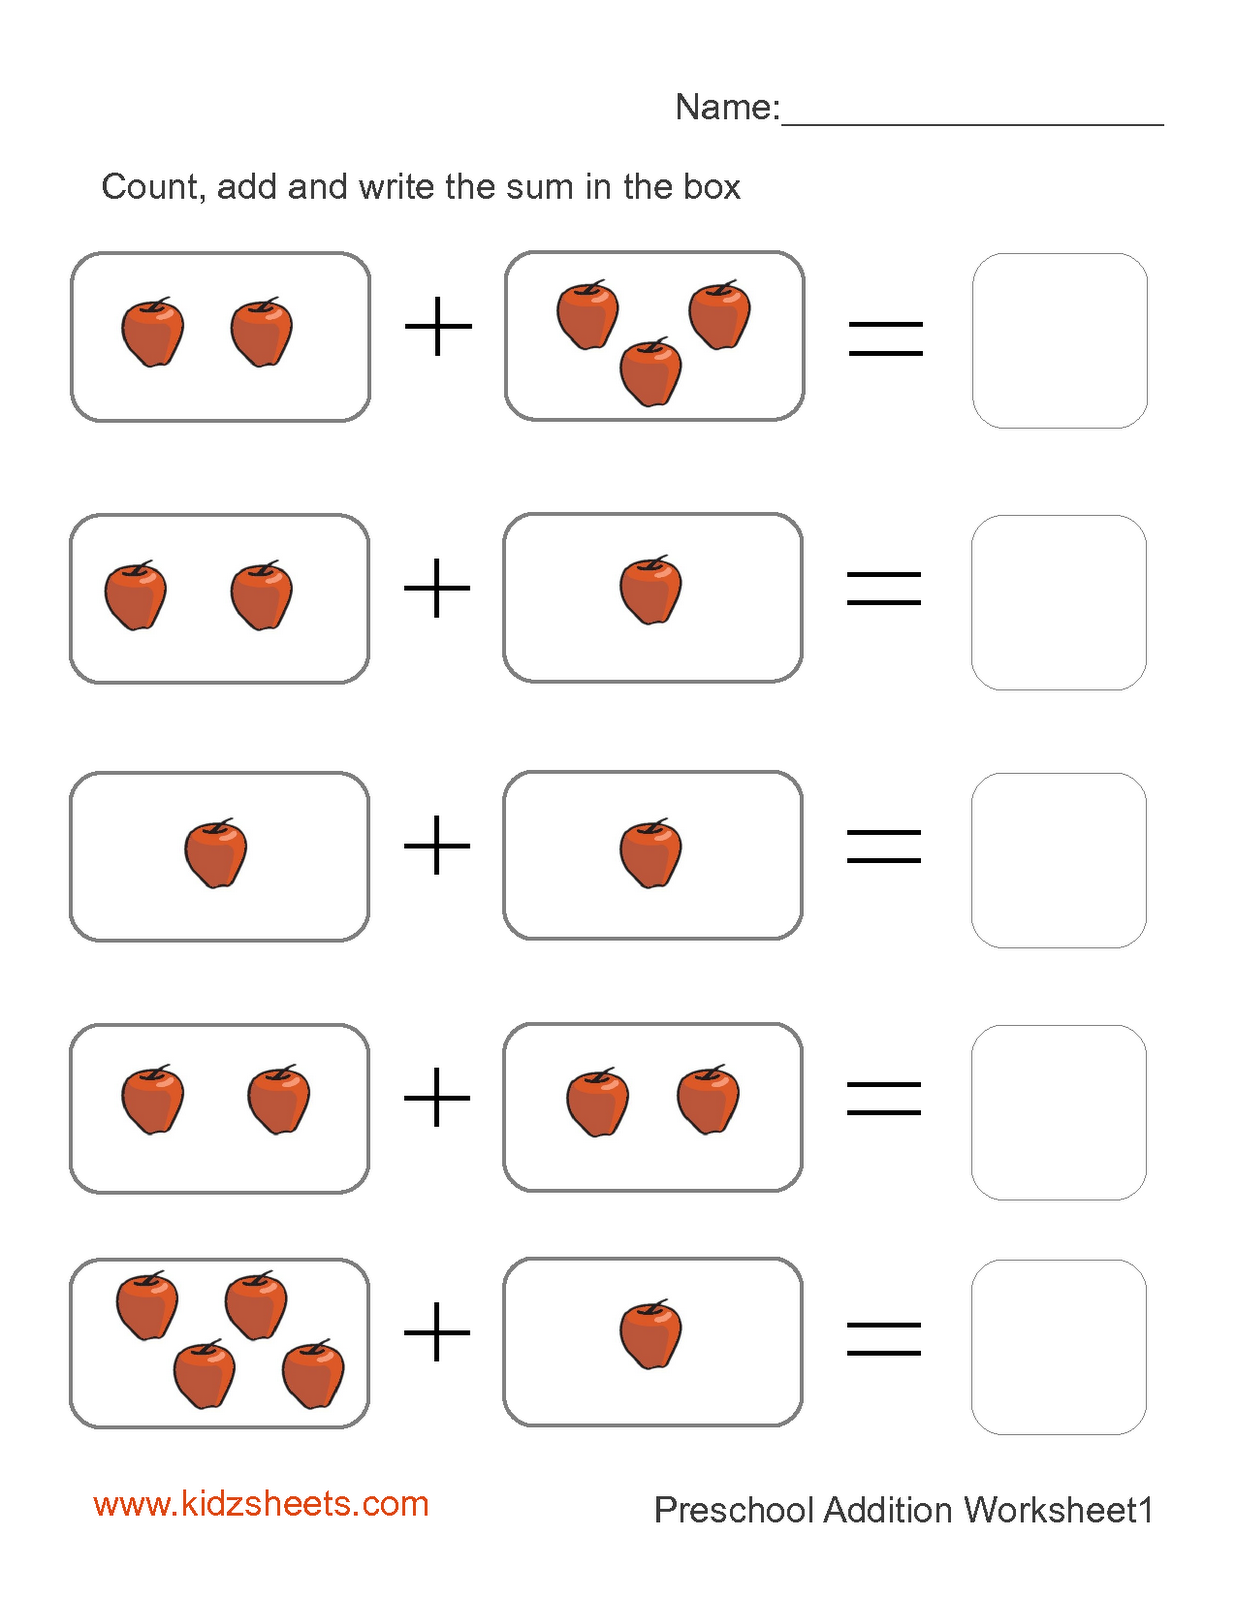 Adding One Printable Addition Worksheet for Kids – Kindergarten Addition Printable Worksheets